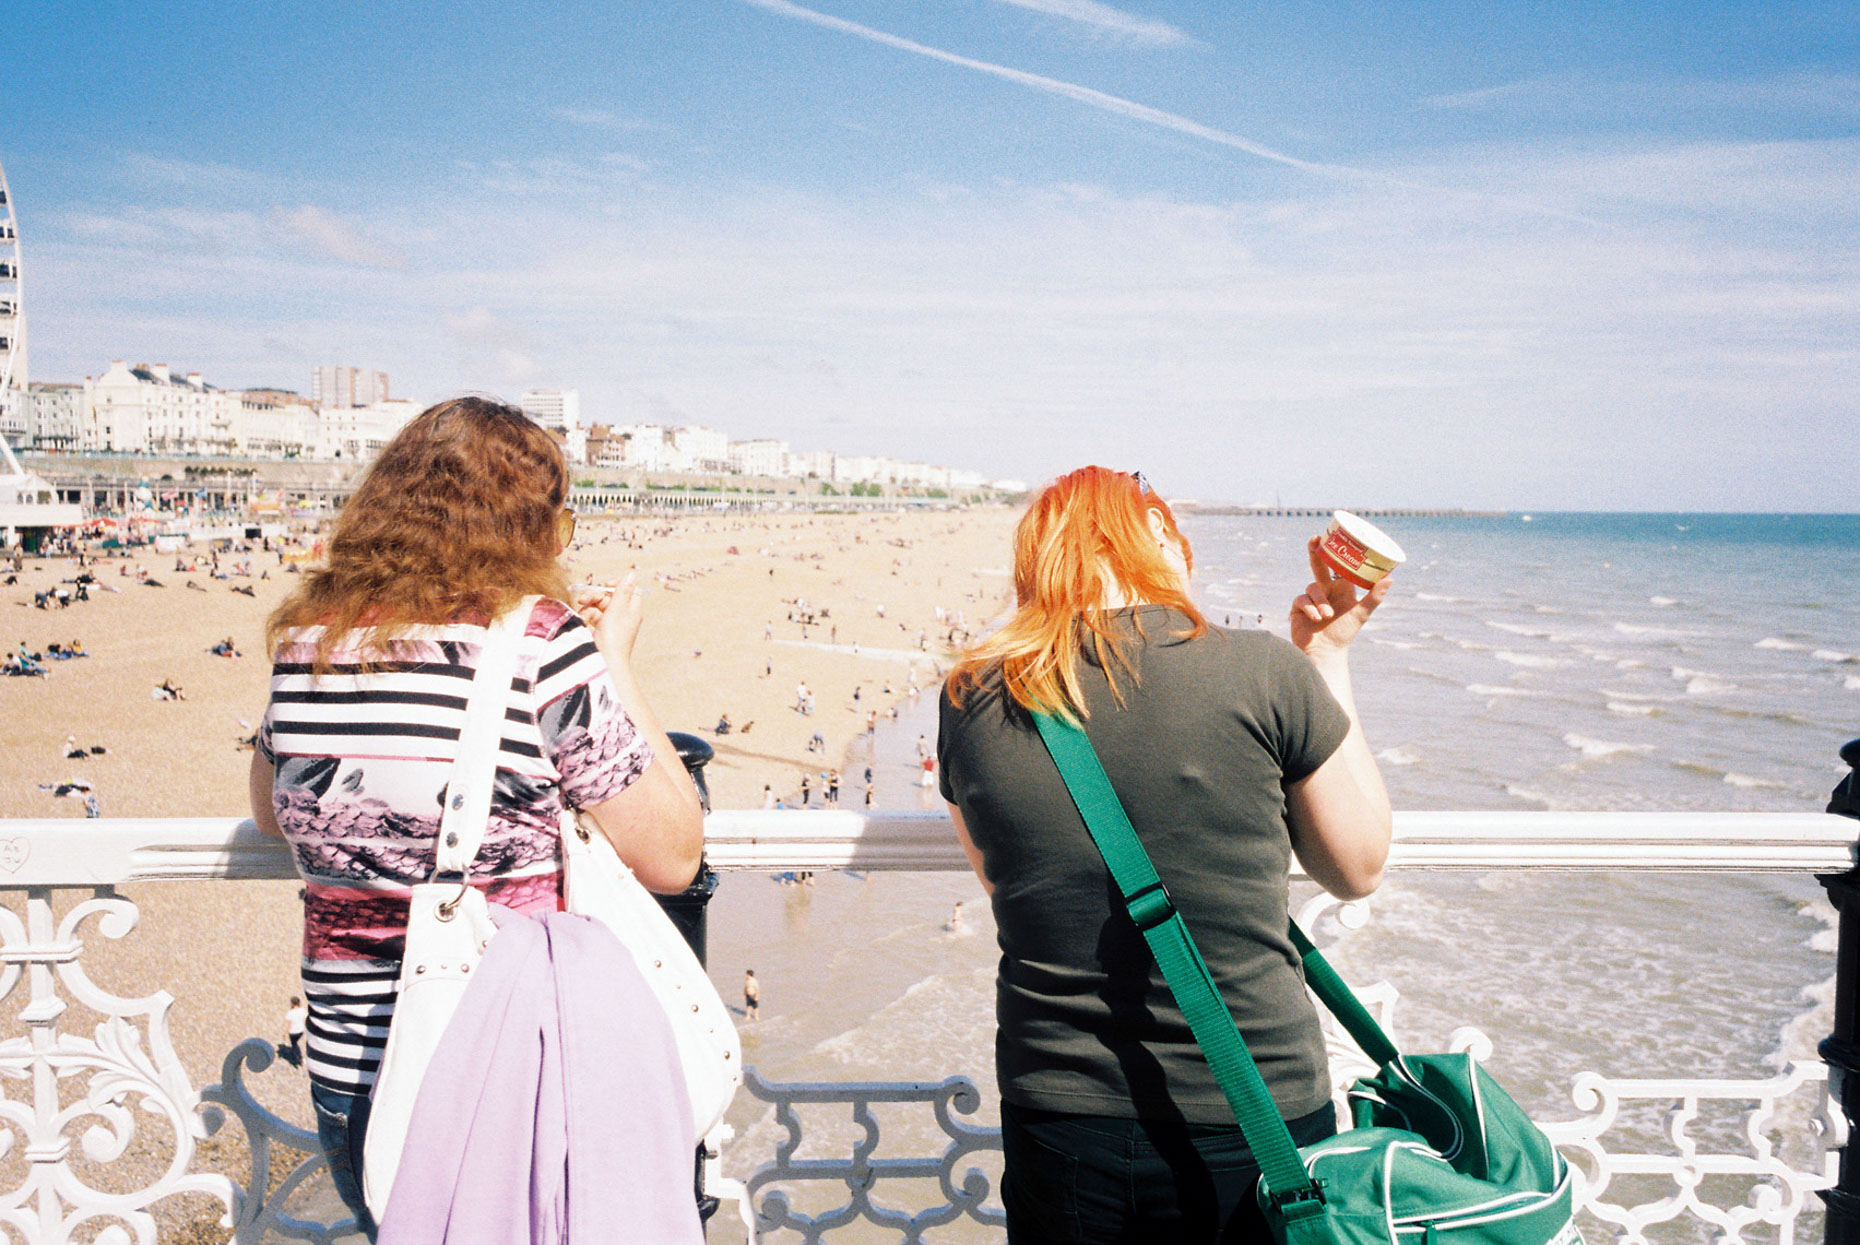 Two women eat Ice Creams on Brighton pier in England.